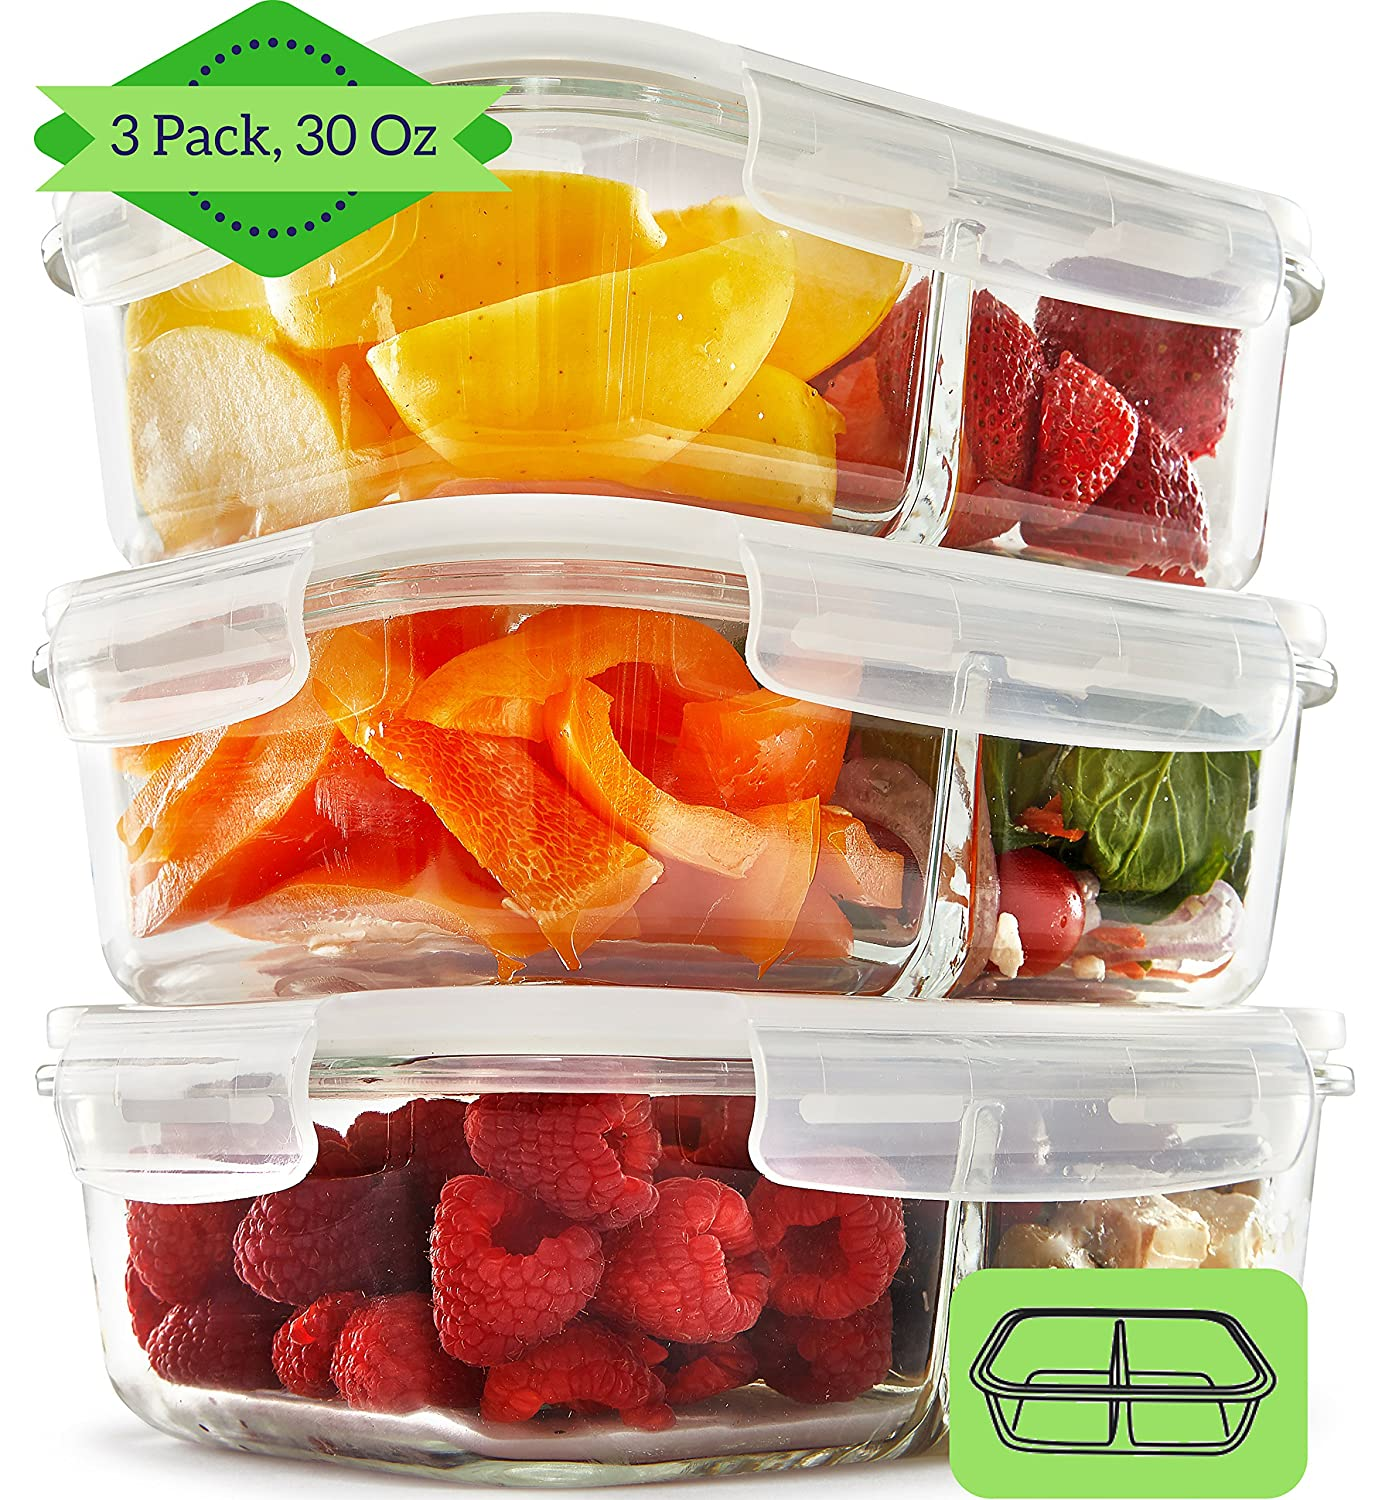 Glass Meal Prep Containers with Lids (3 Pack, 35 Oz) - 2 Compartment Food Prep Containers with Snap Locking Lids | Glass Lunch Containers | Glass Food Storage Containers | Glass Bento Box | Portion Control | Leakproof Fit Strong & Healthy GlassContainerSet